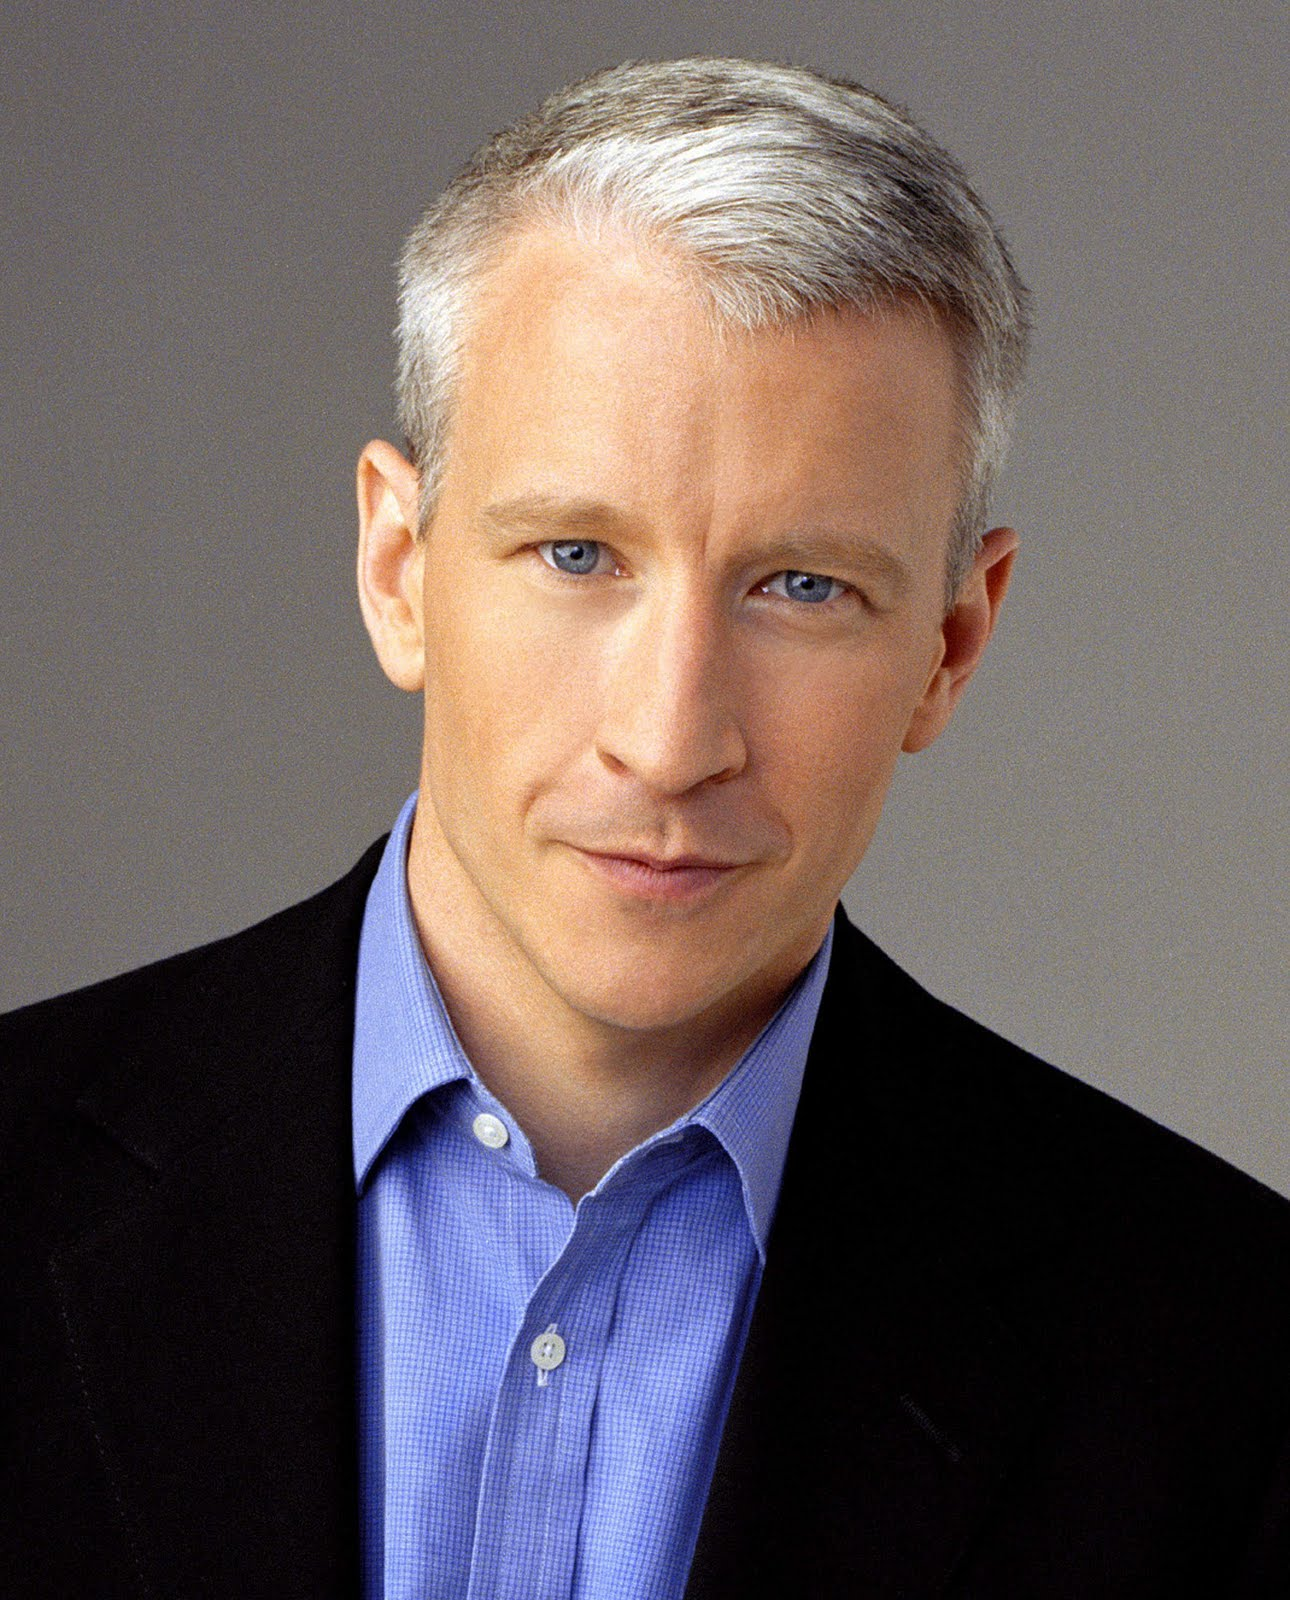 Anderson Cooper's Ridiculist - The Funniest 5 Minutes on TV